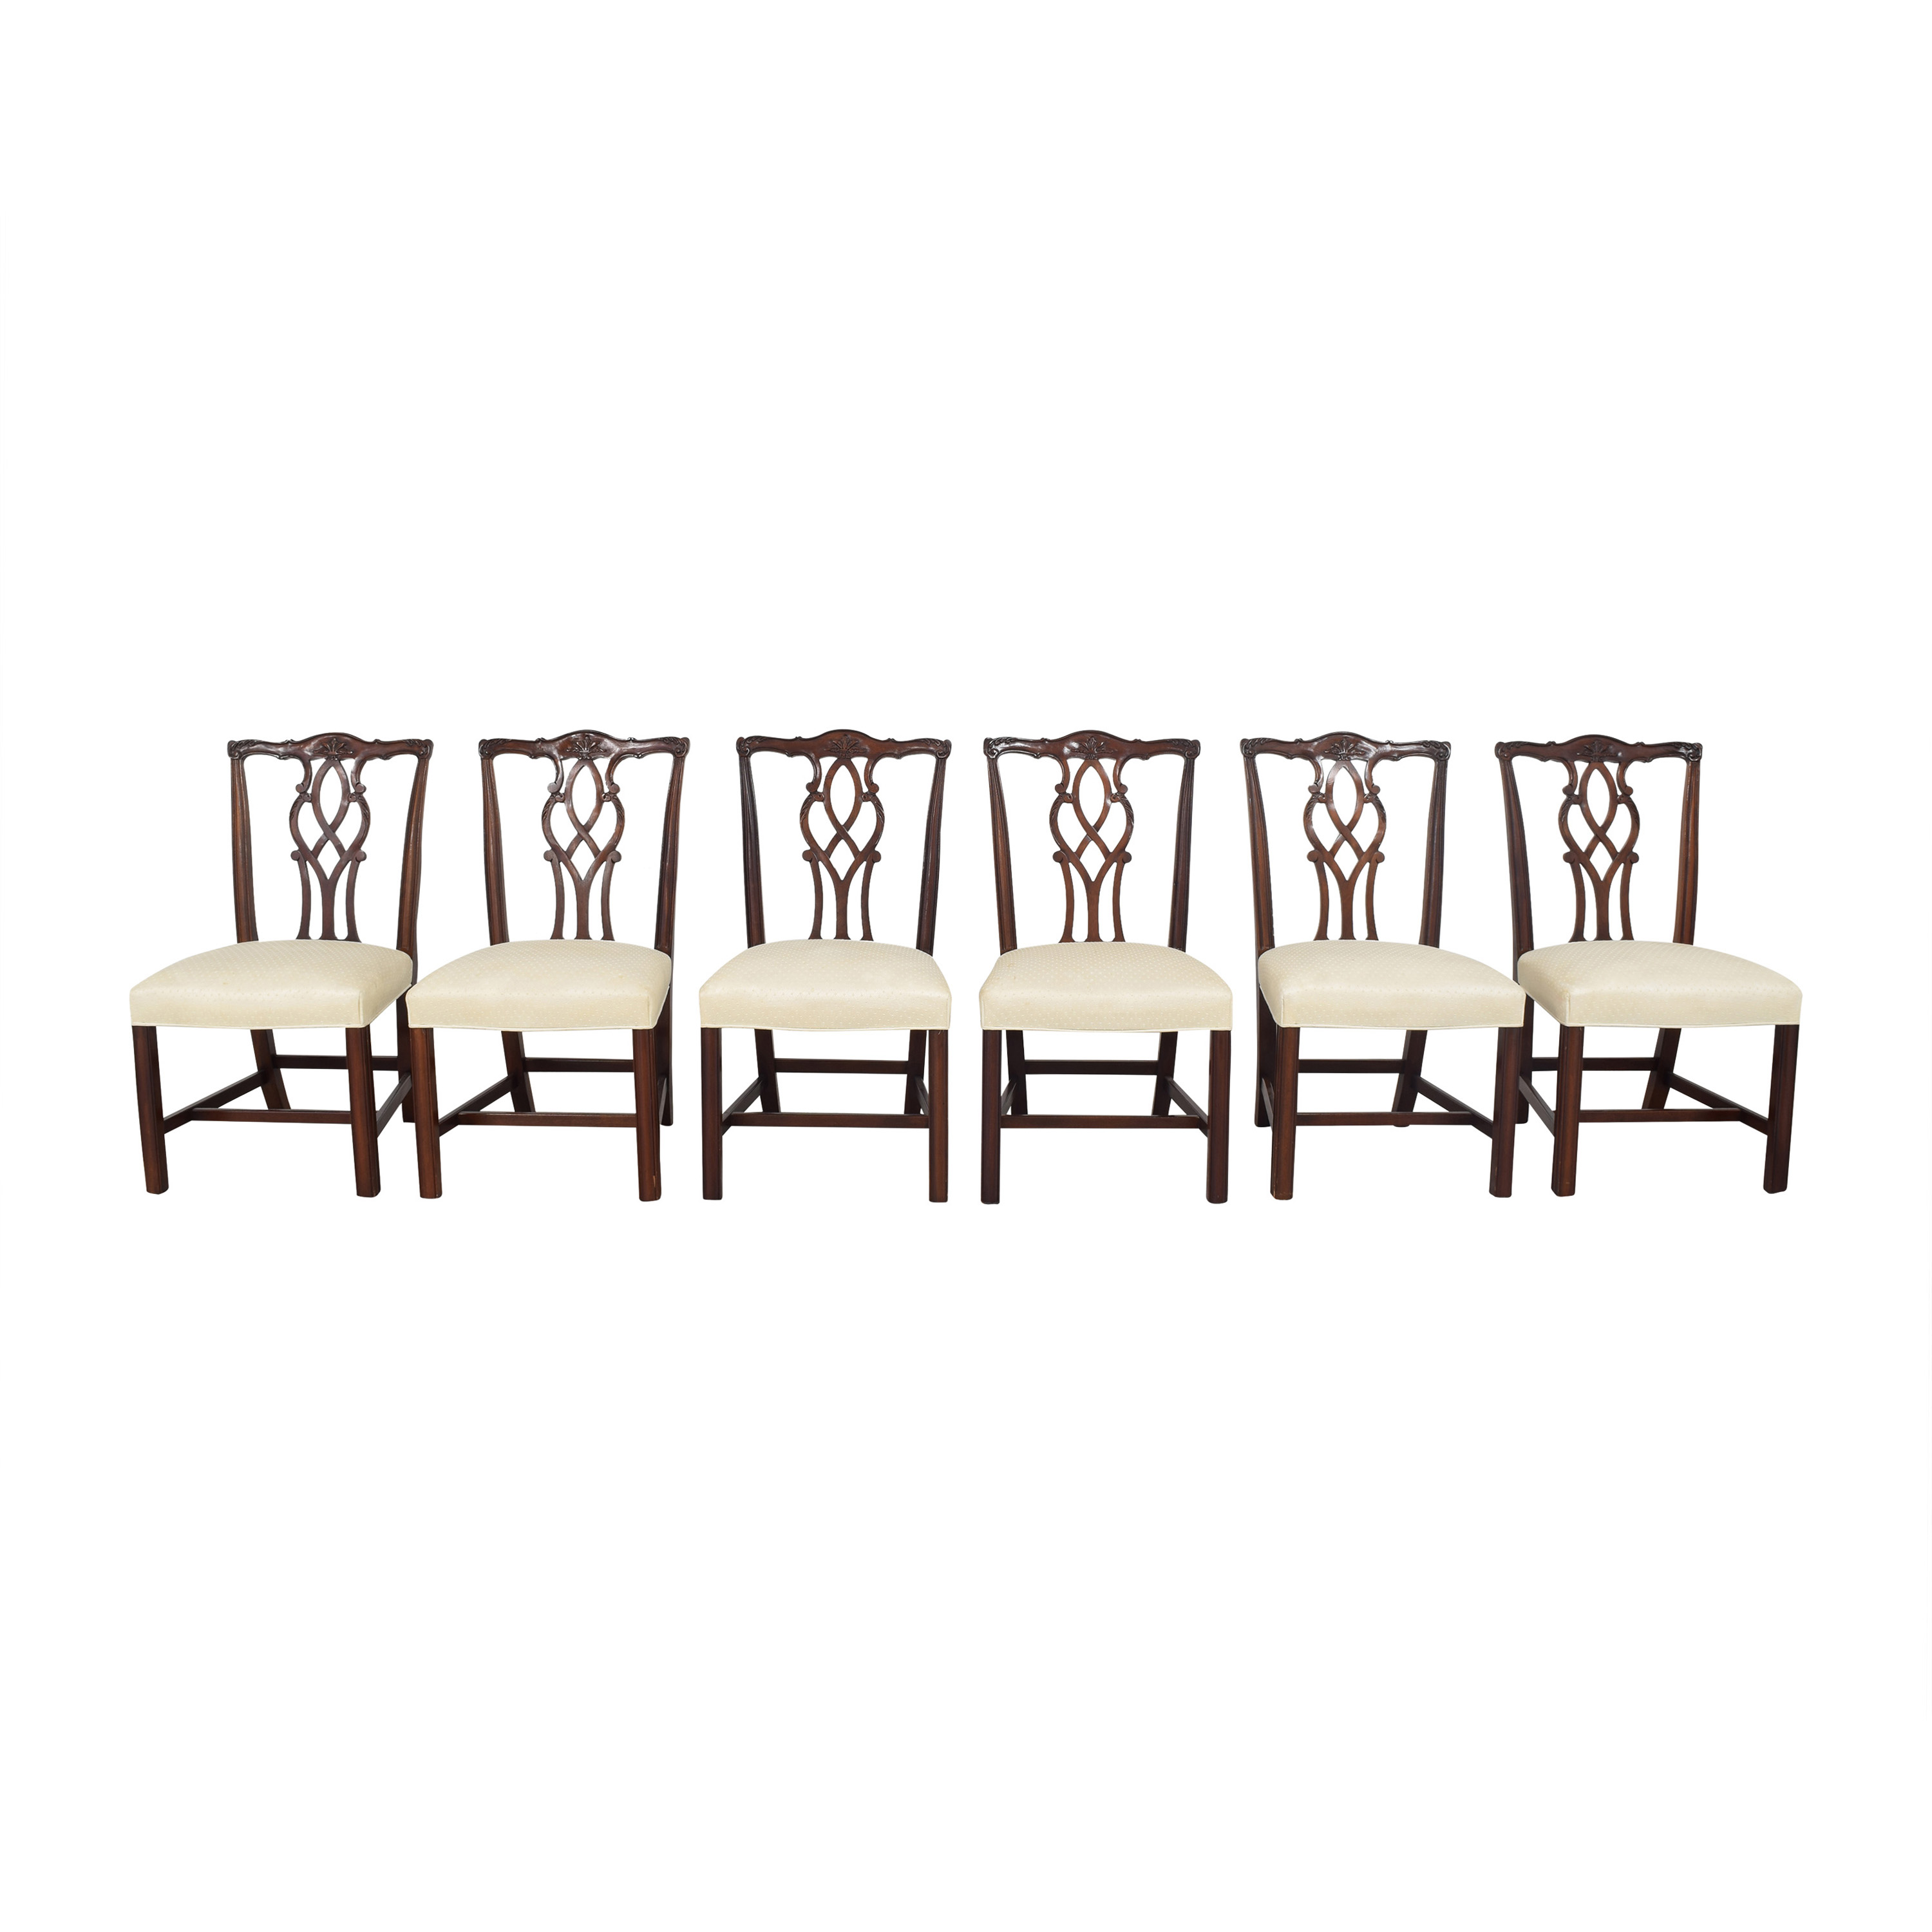 Kindel Kindel Chippendale Dining Side Chairs ma